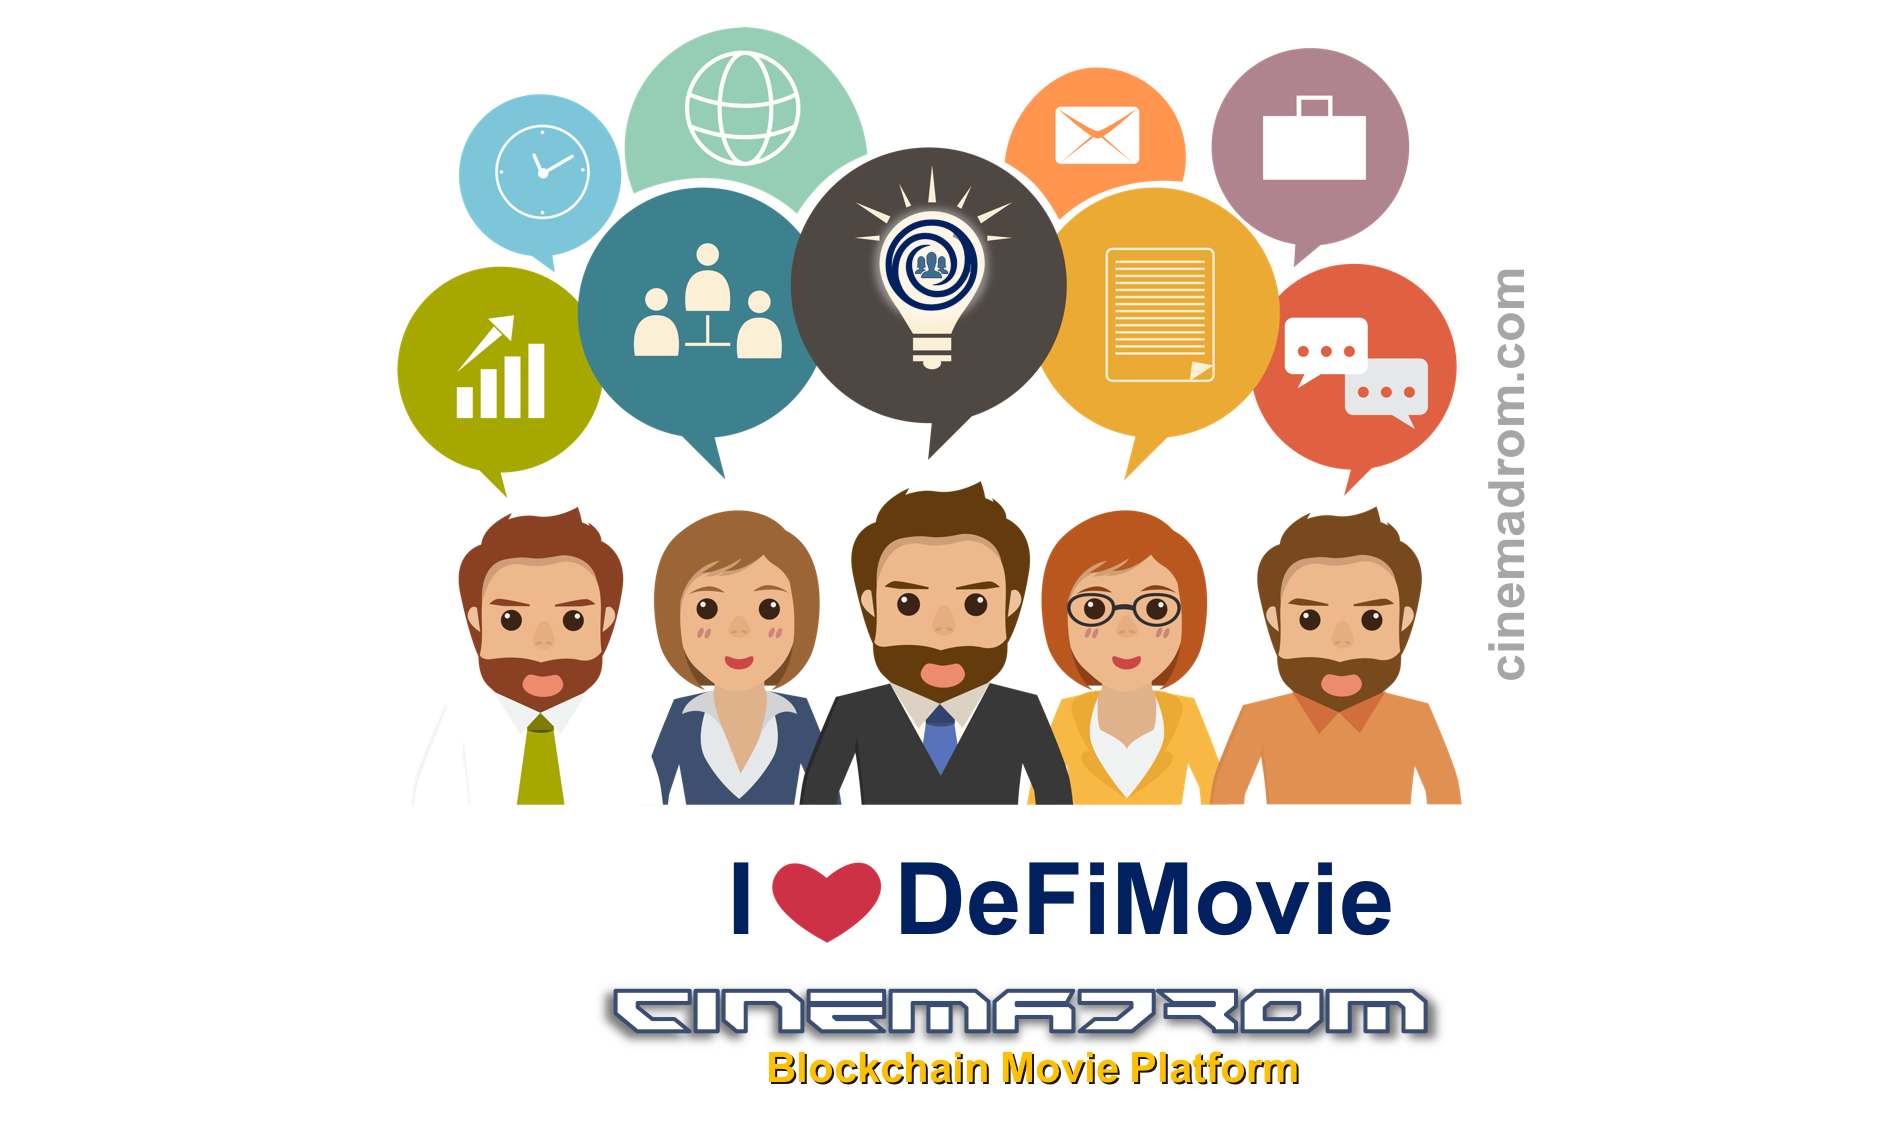 The Cinemadrom present DefiMovie protocol to create Money Markets.